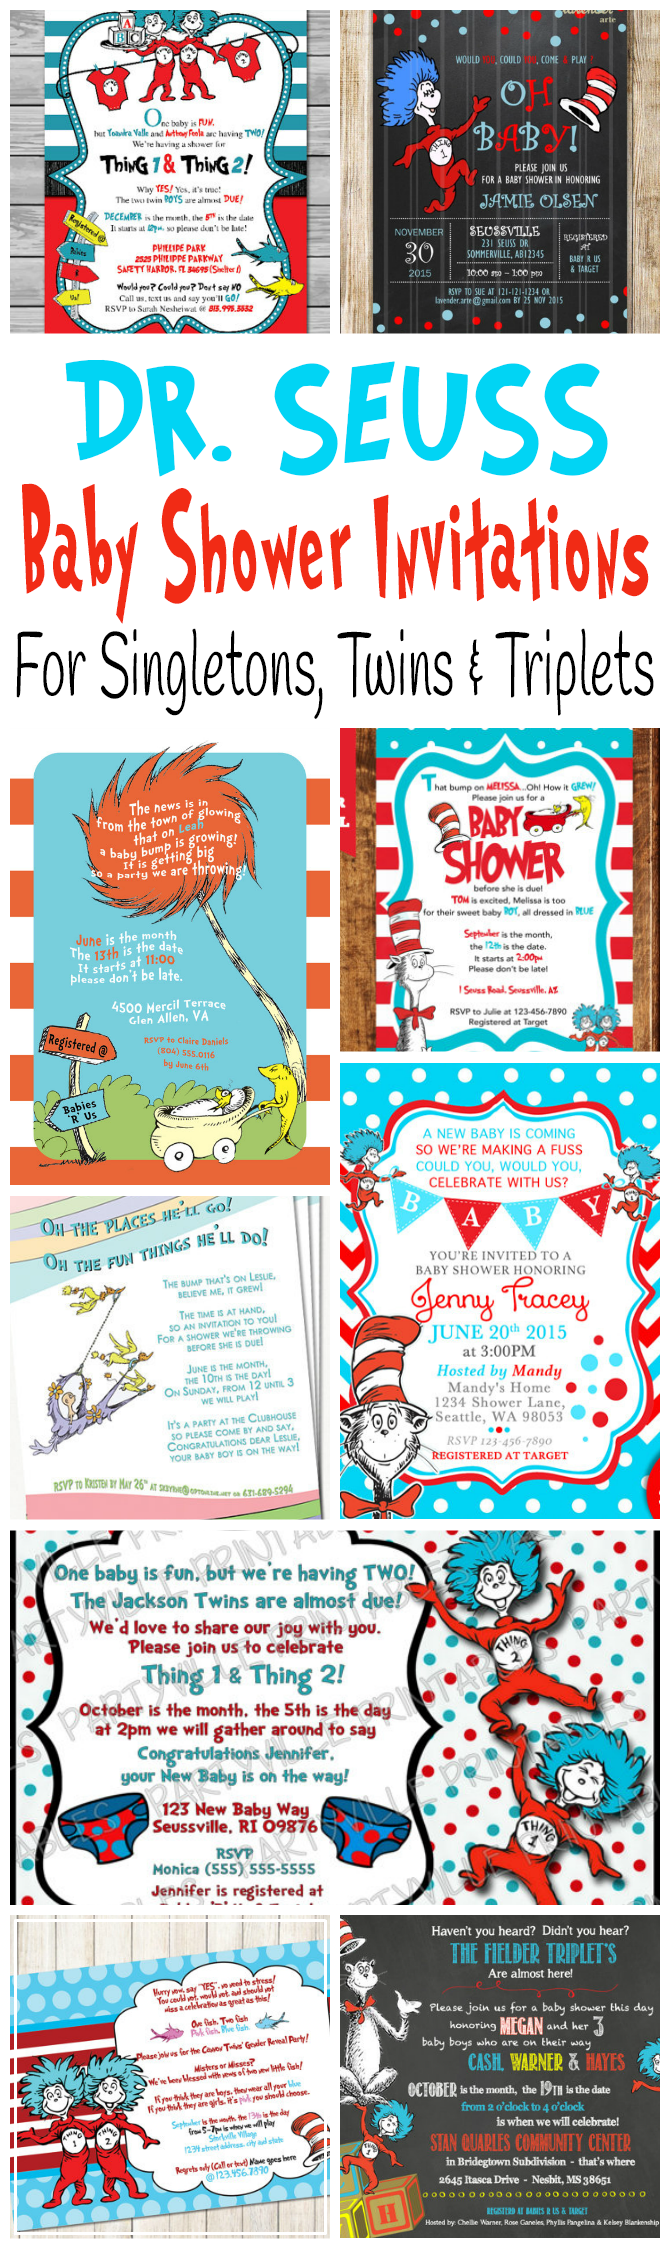 Printable Dr. Seuss Baby Shower Invitations For One Baby or Twins ...